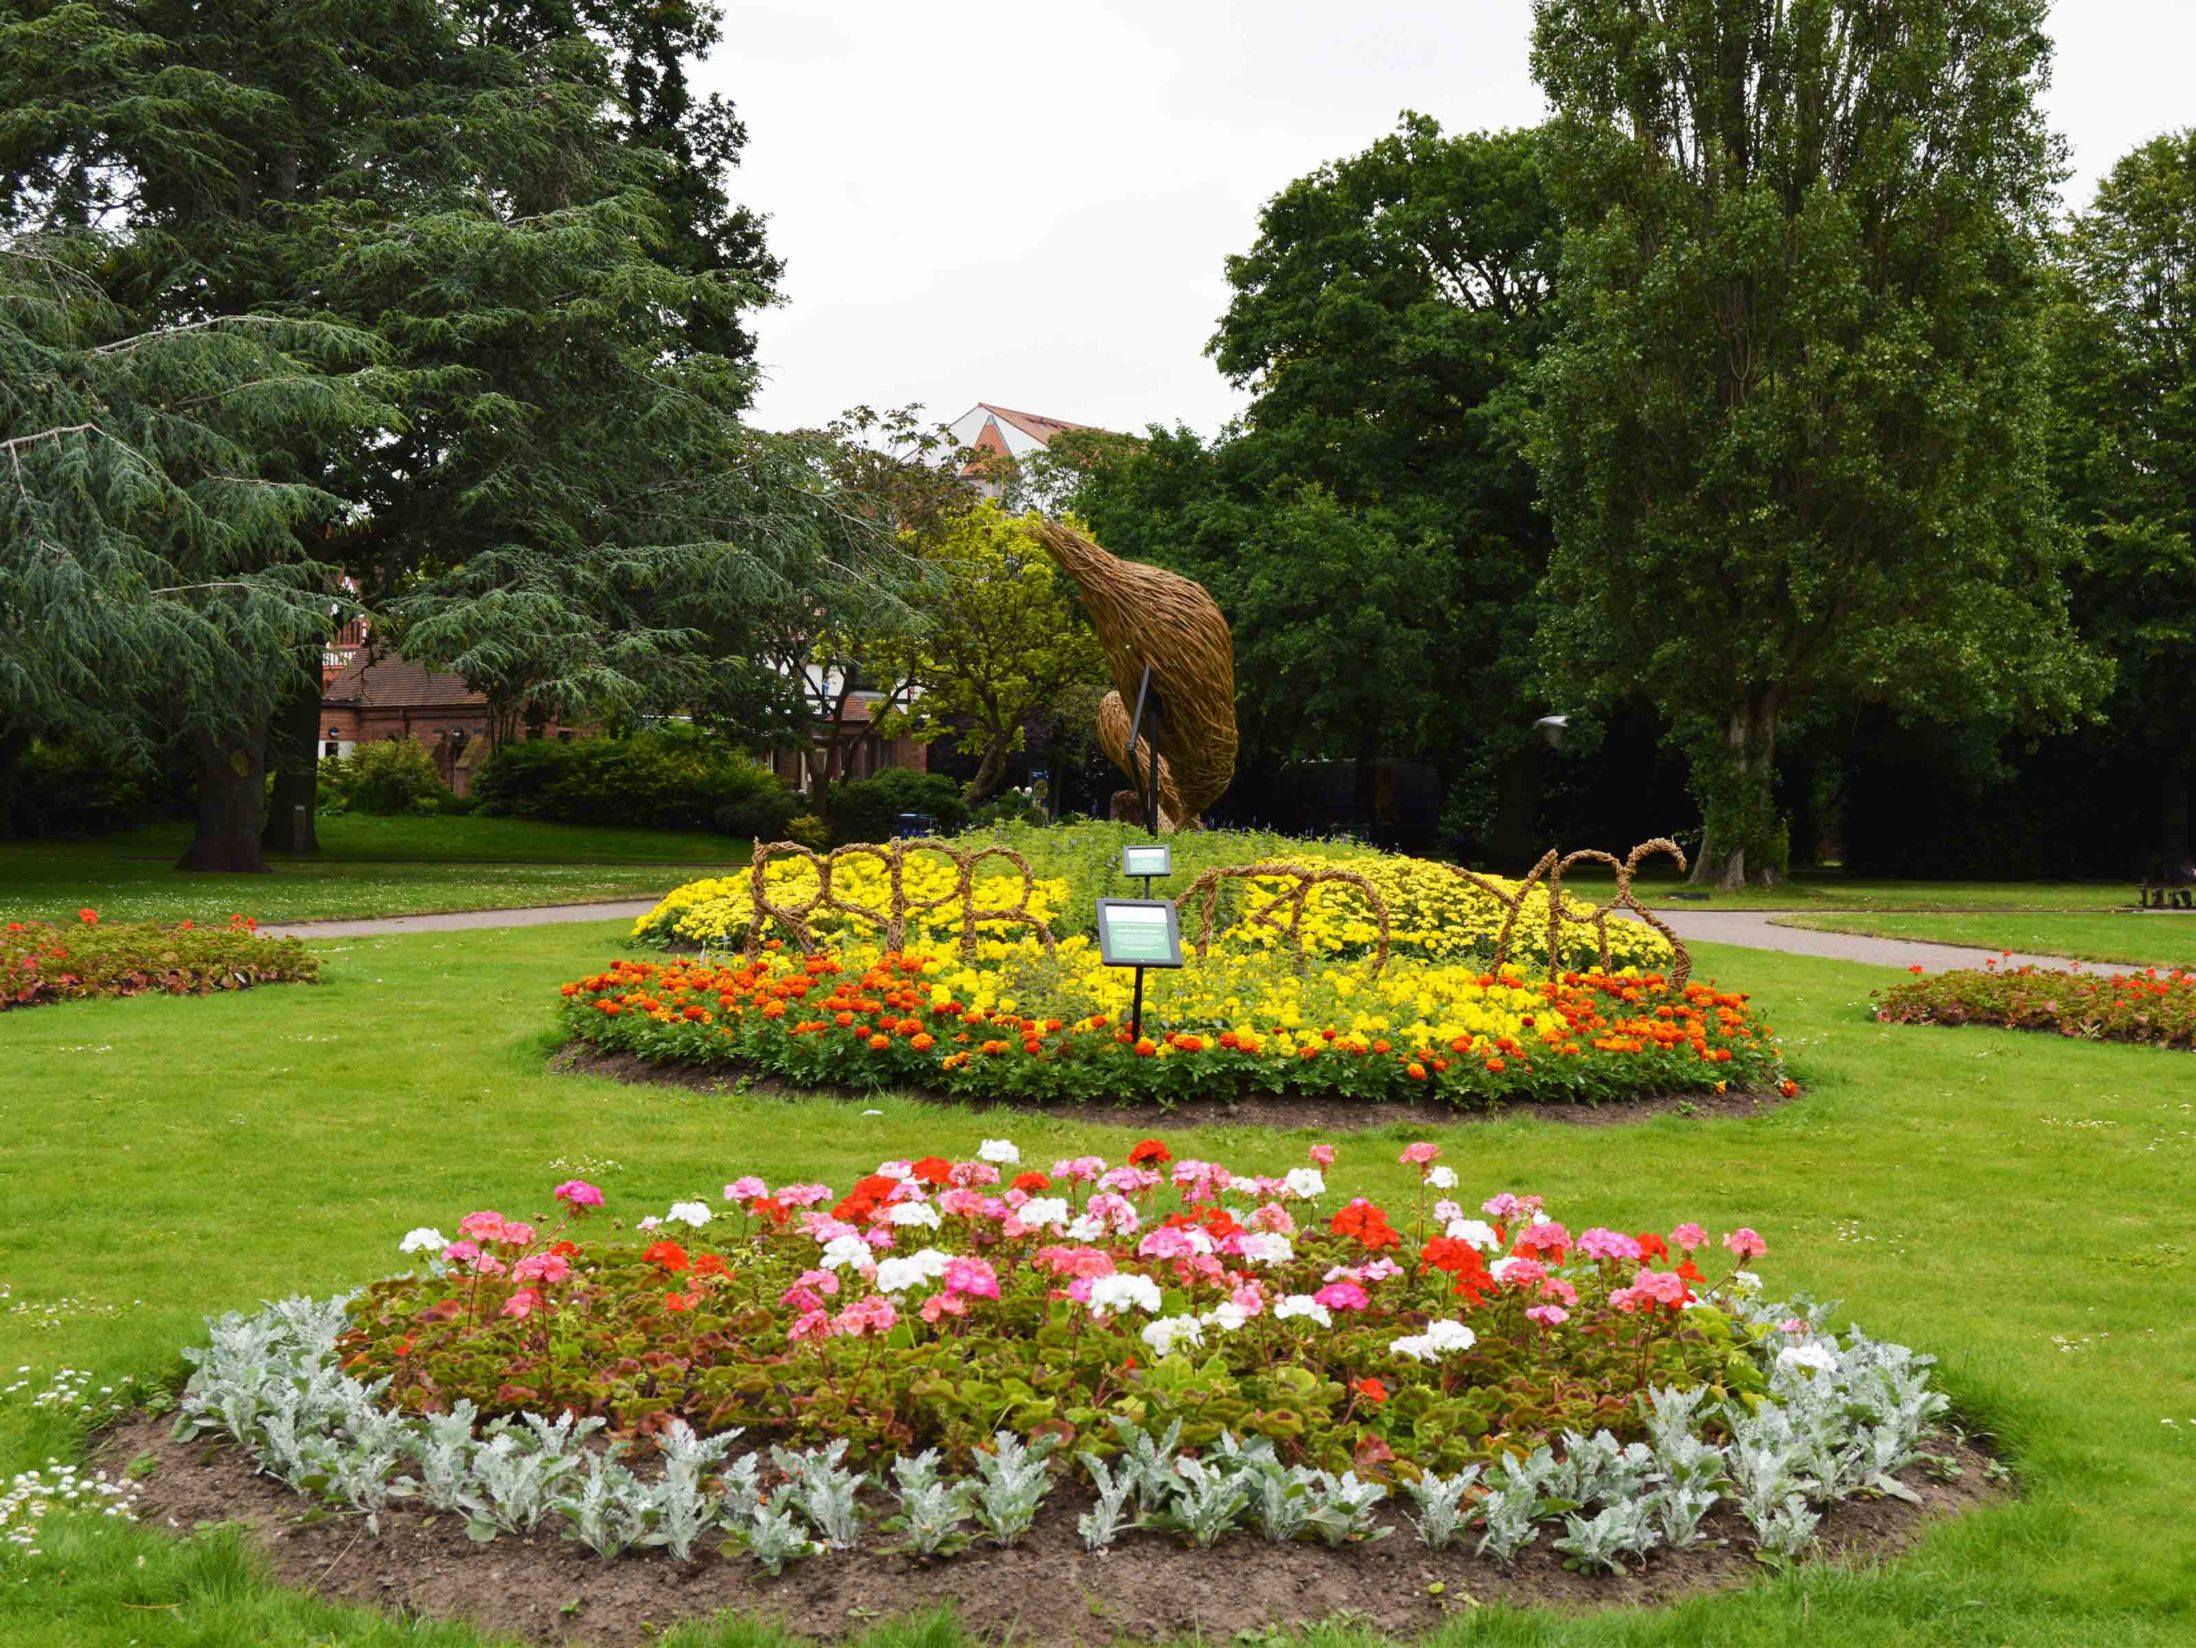 Grosvenor Park - Things to Do in Chester